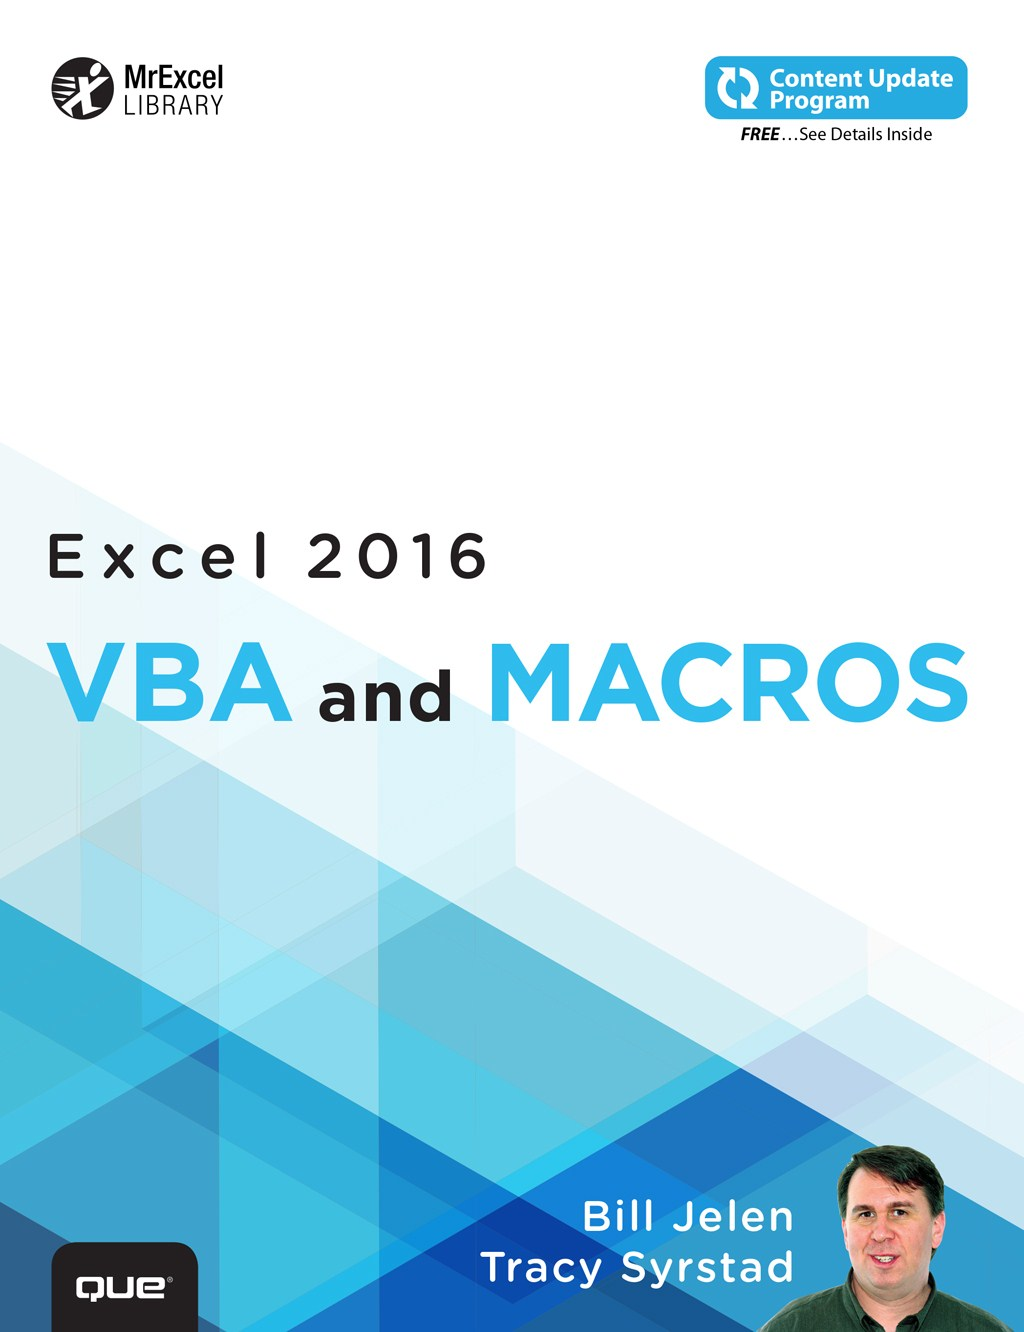 Excel 2016 VBA and Macros (includes Content Update Program) | InformIT